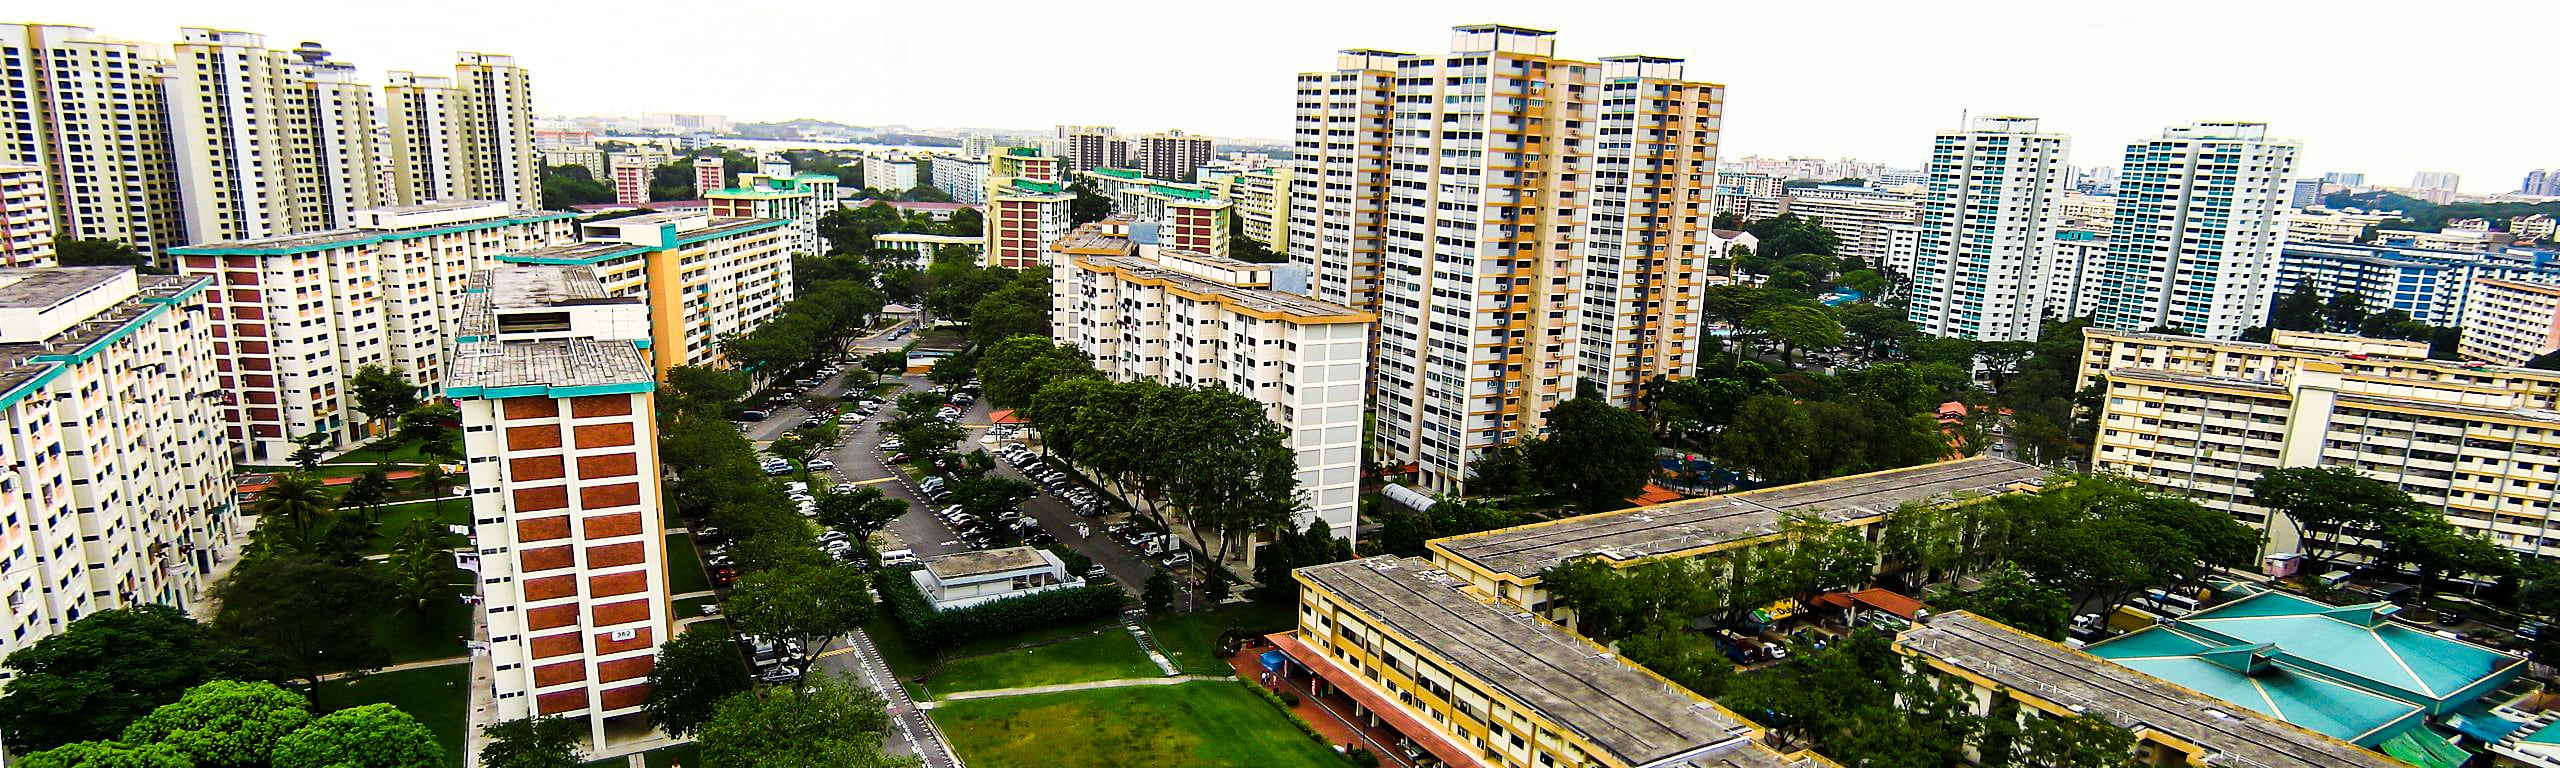 clementi district 21